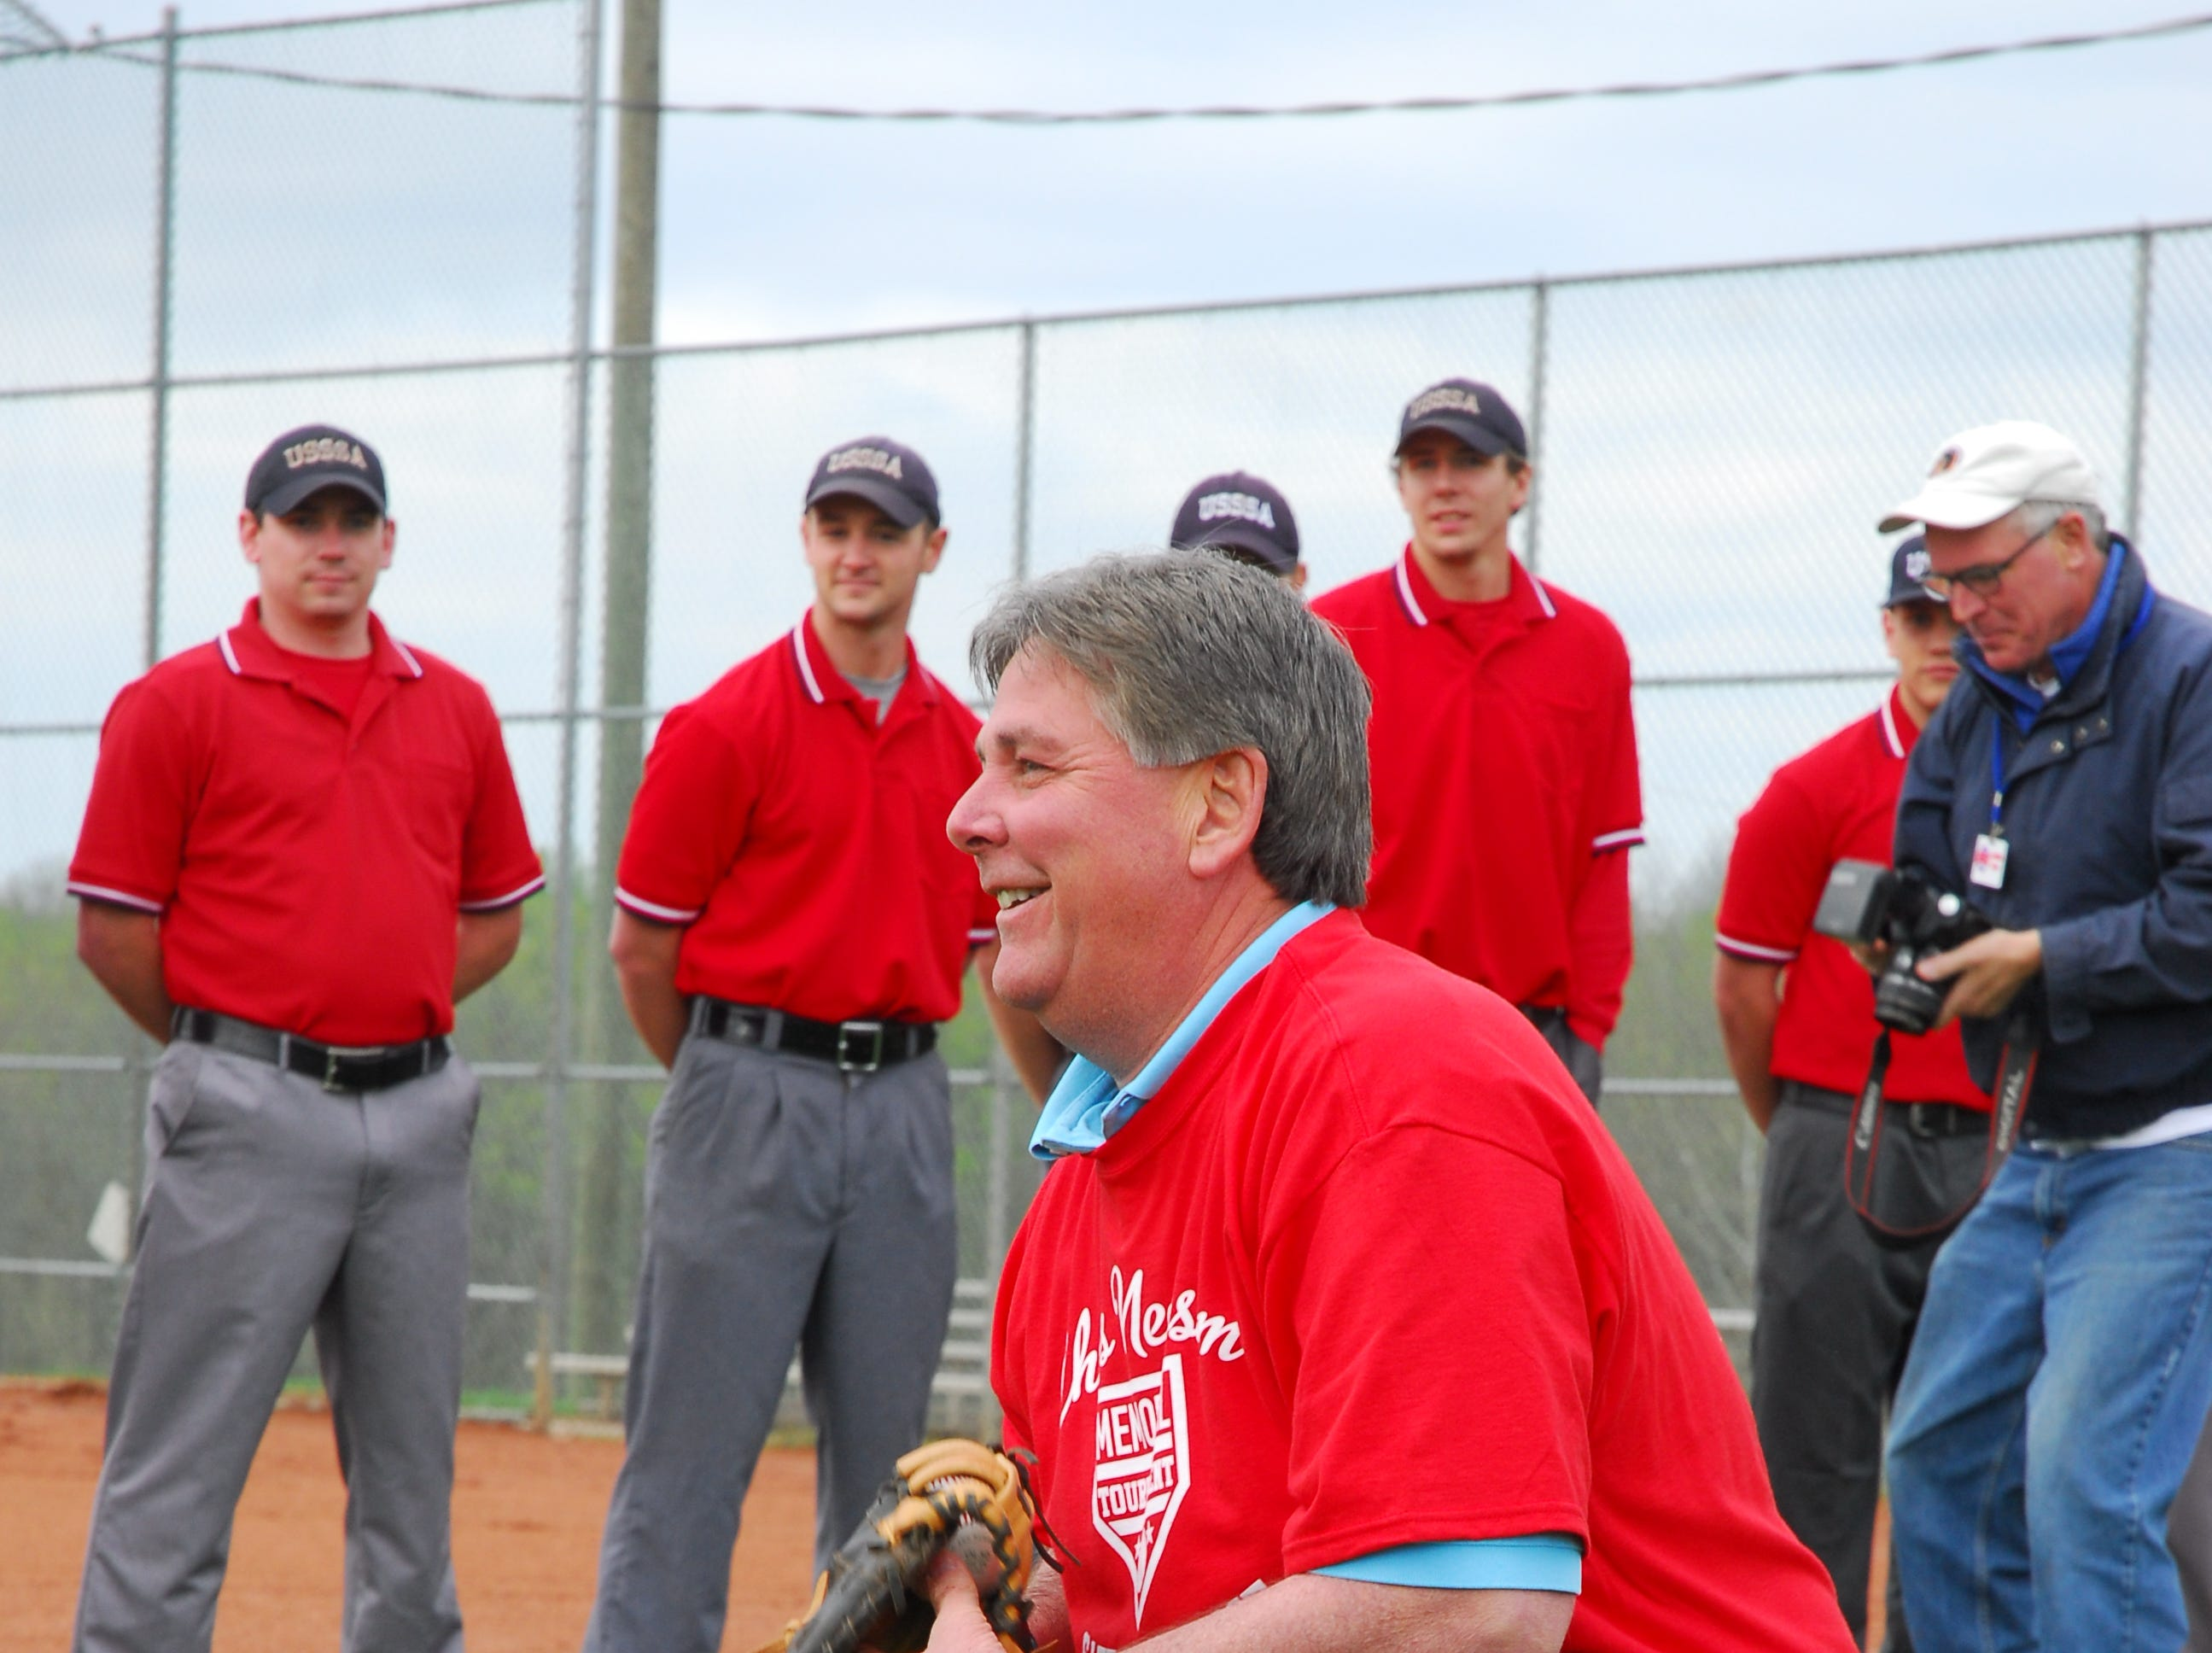 Sheriff JJ Jones served as catcher for Hugh Newsom, who threw out the first pitch of the 2011 Chris Newsom Memorial Tournament at Halls Park.